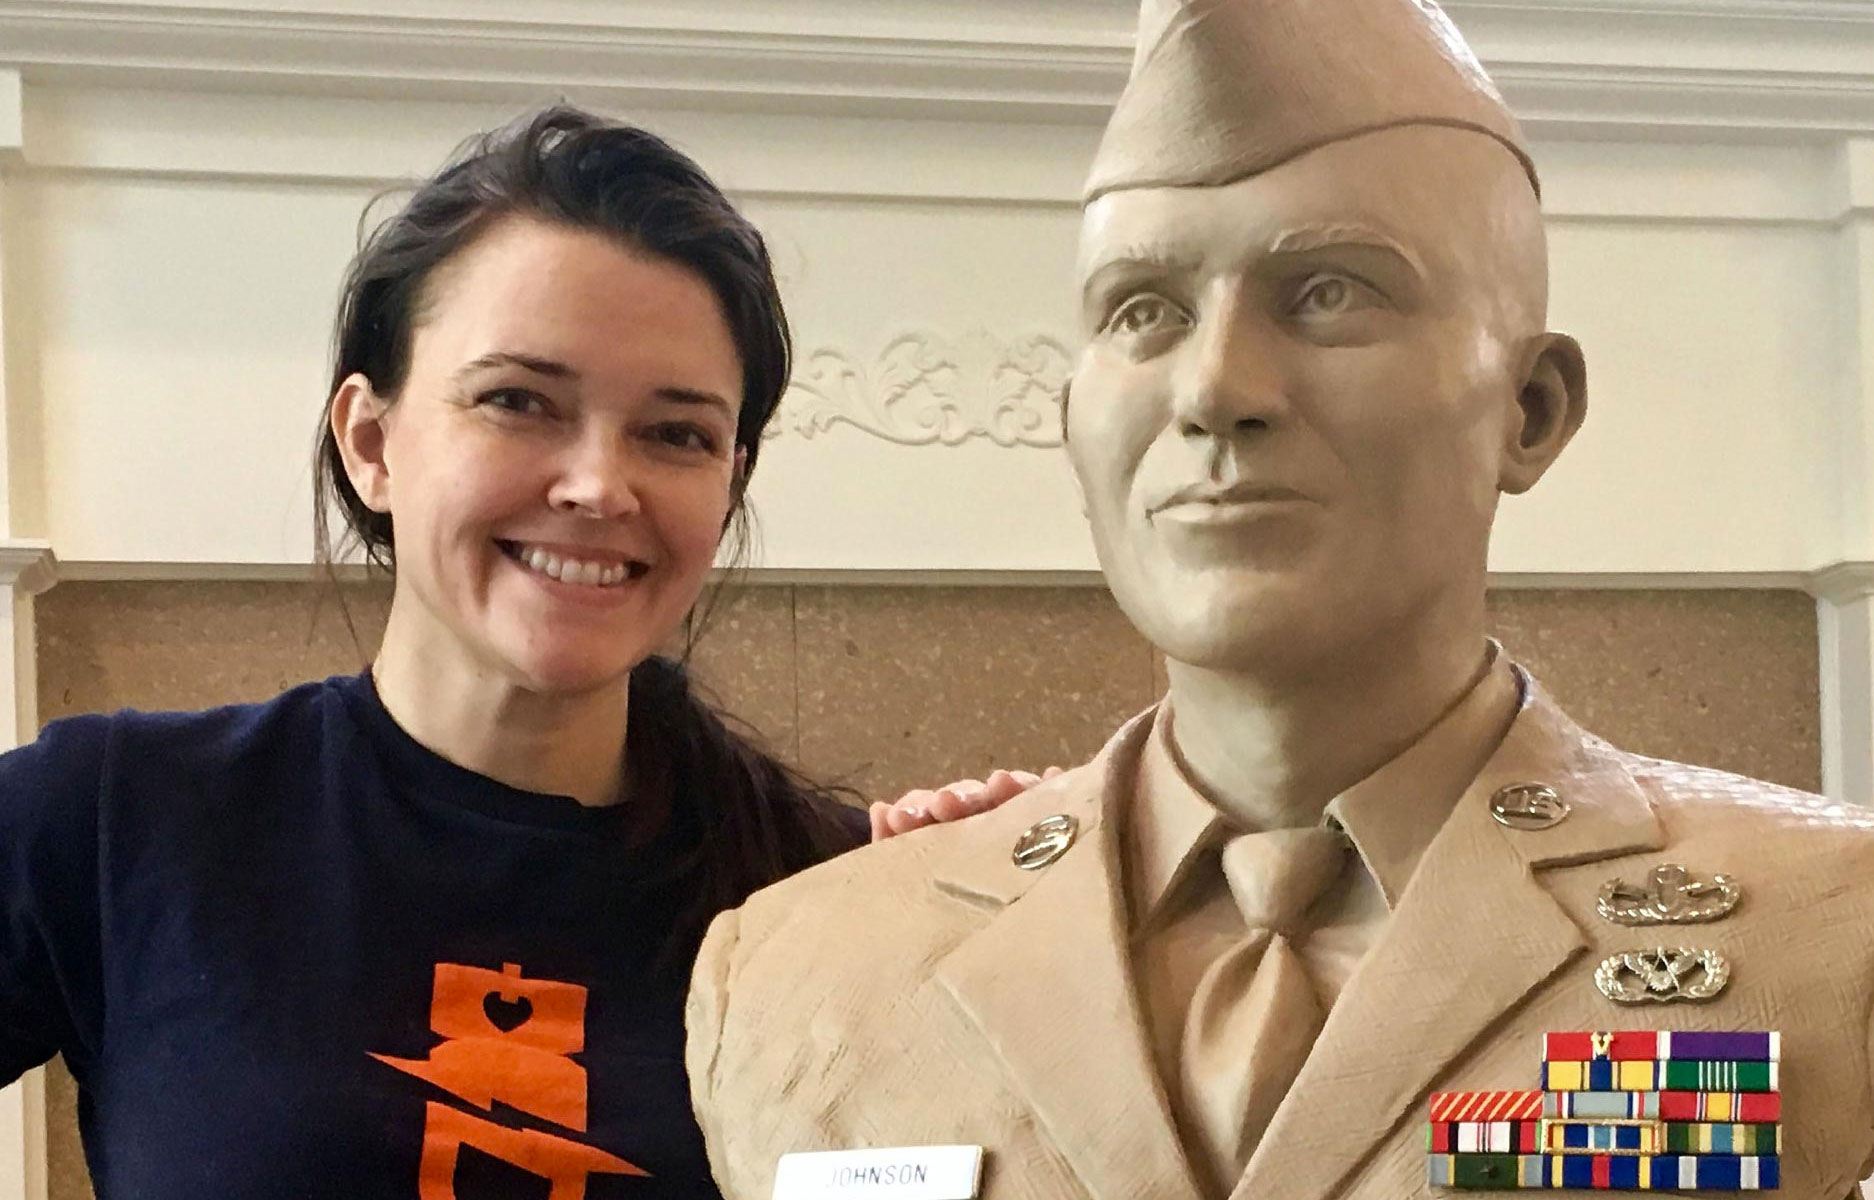 (U.S. Air Force photo by Senior Master Sgt. Stephen Hunter) LUKE AIR FORCE BASE, Ariz. (AFNS) — Stephanie Hunter, spouse of Senior Master Sgt. Stephen Hunter, 944th Civil Engineer Squadron explosive ordnance disposal technician program manager, stands beside a sculpted bust of Senior Airman Daniel Johnson, 30th Civil Engineer Squadron EOD technician. Stephanie created the scuplture as a memorial for Johnson who was killed in action Oct. 5, 2010 while serving during Operation Enduring Freedom.